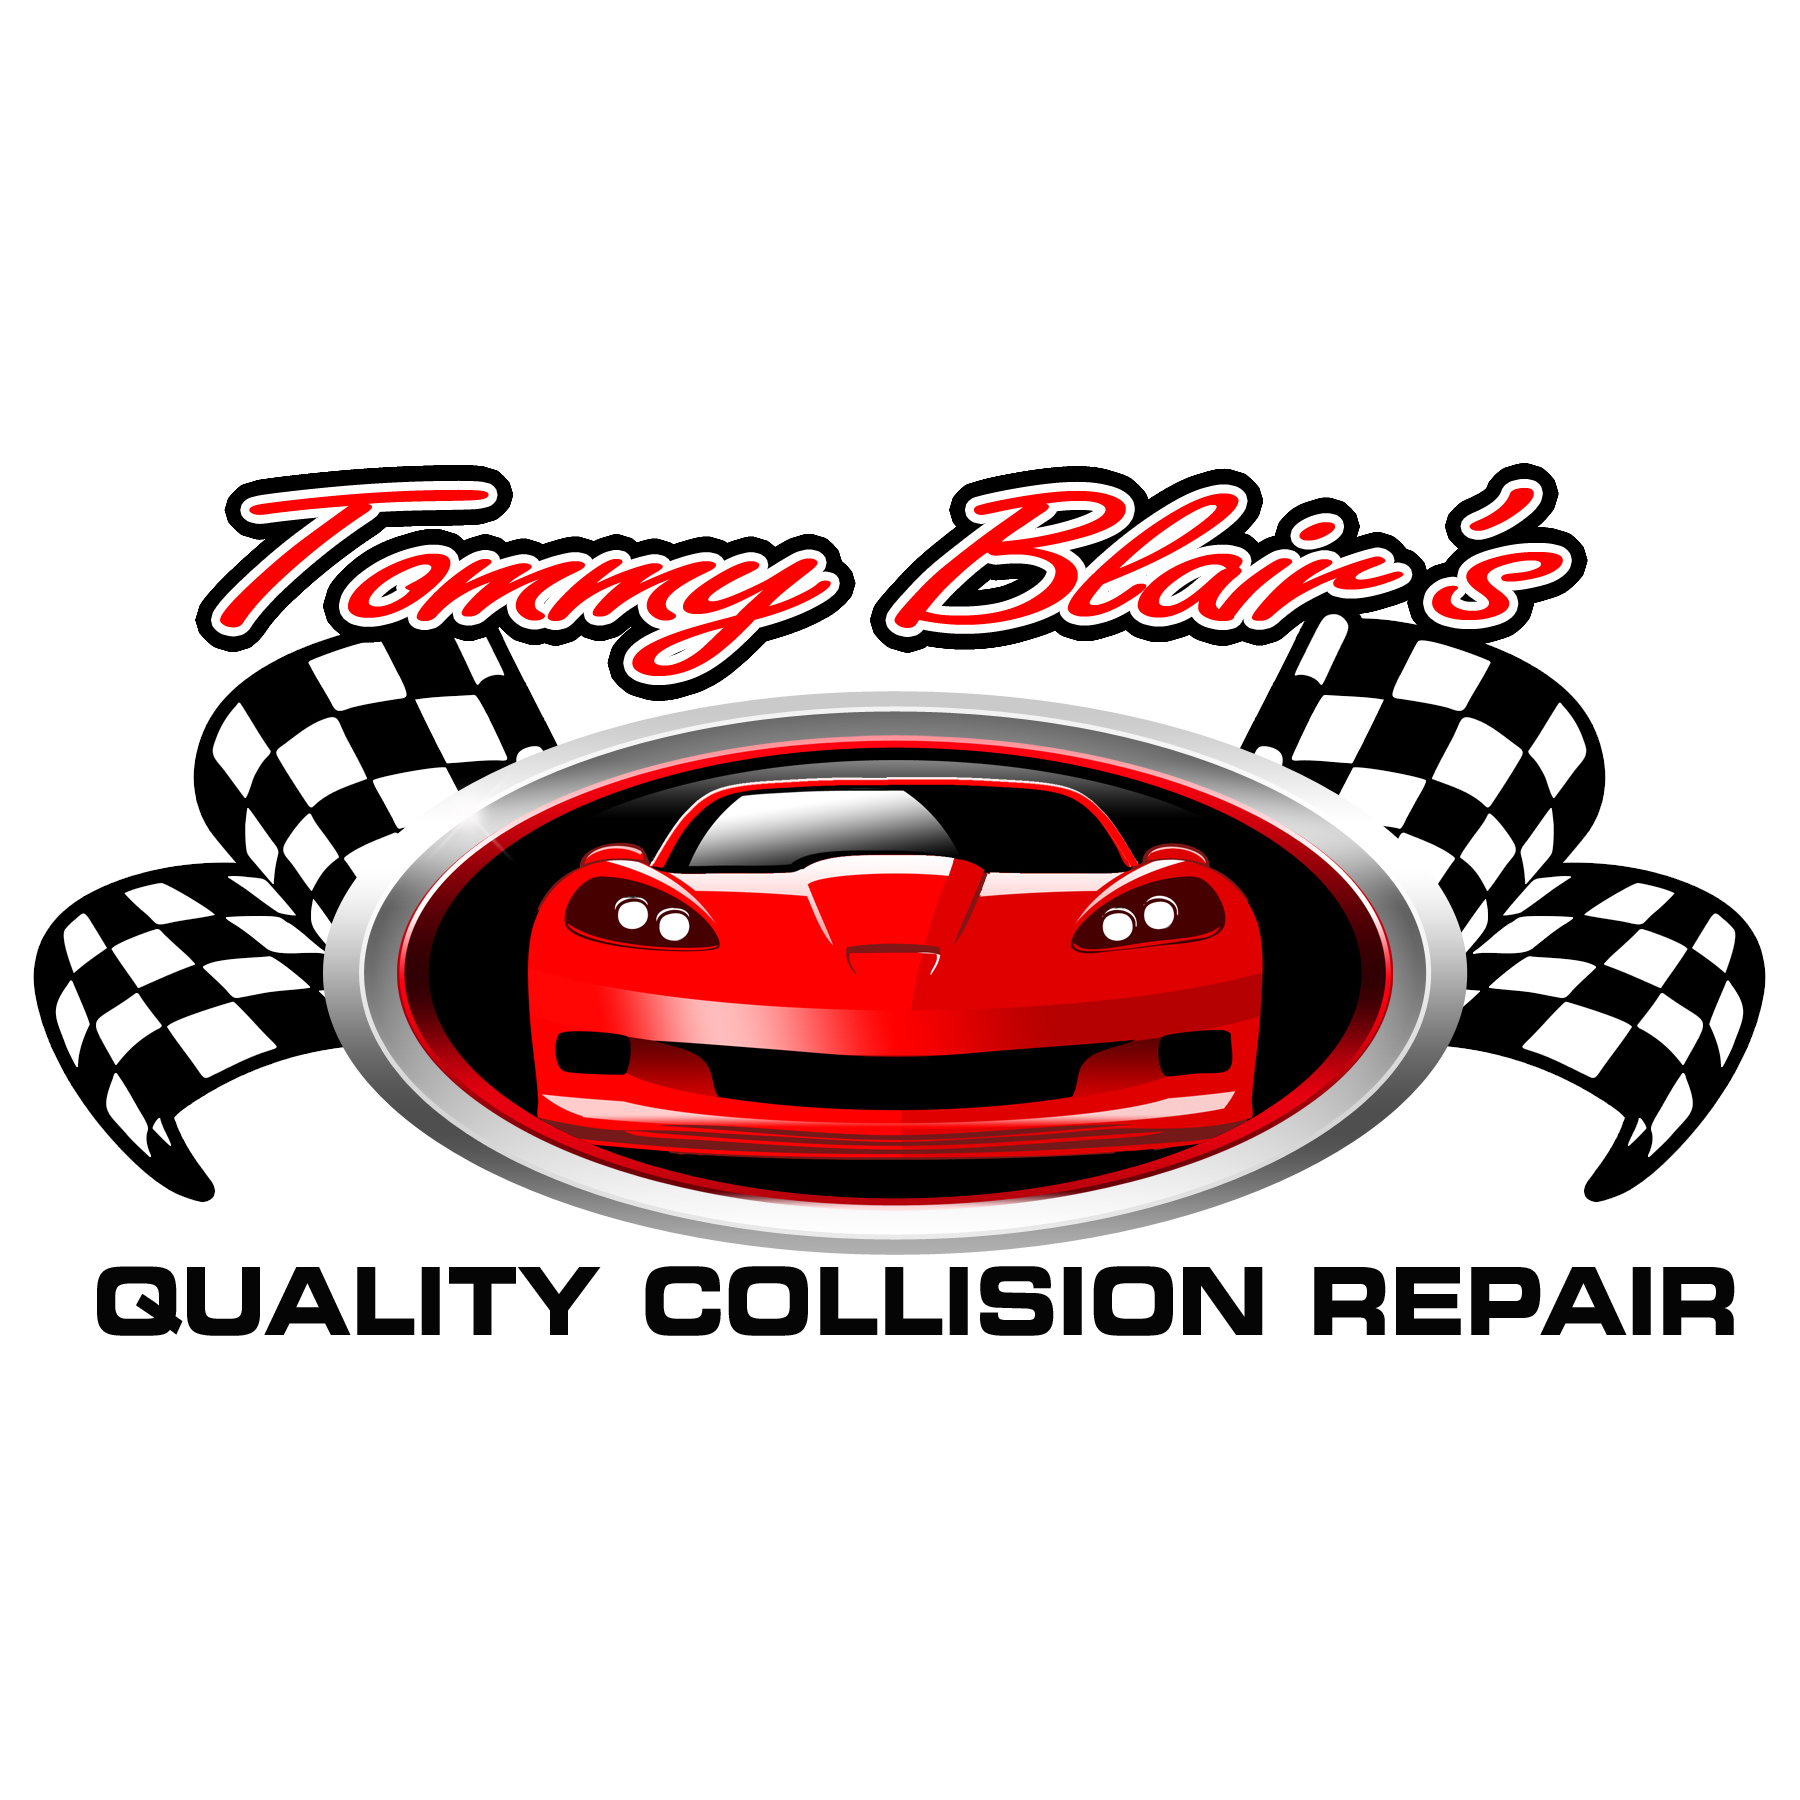 Tommy Blair's Quality Collision Repair